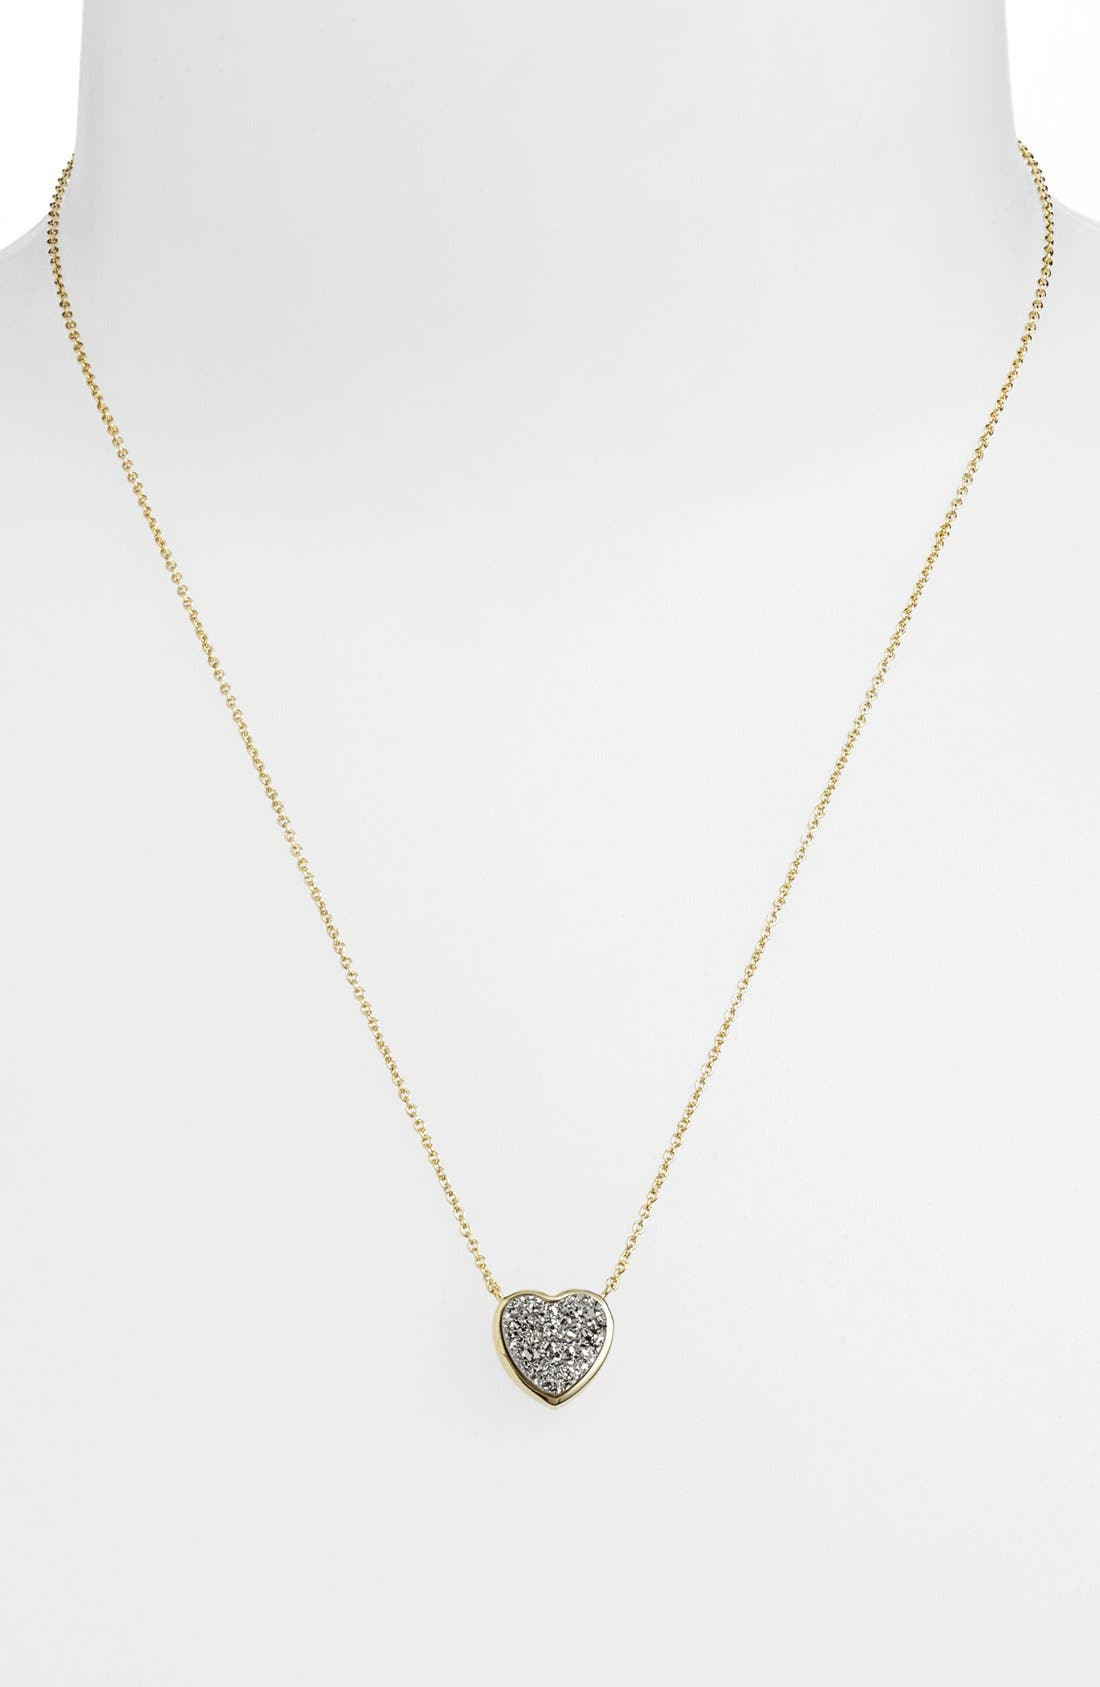 Alternate Image 1 Selected - Marcia Moran Heart Drusy Pendant Necklace (Online Only)